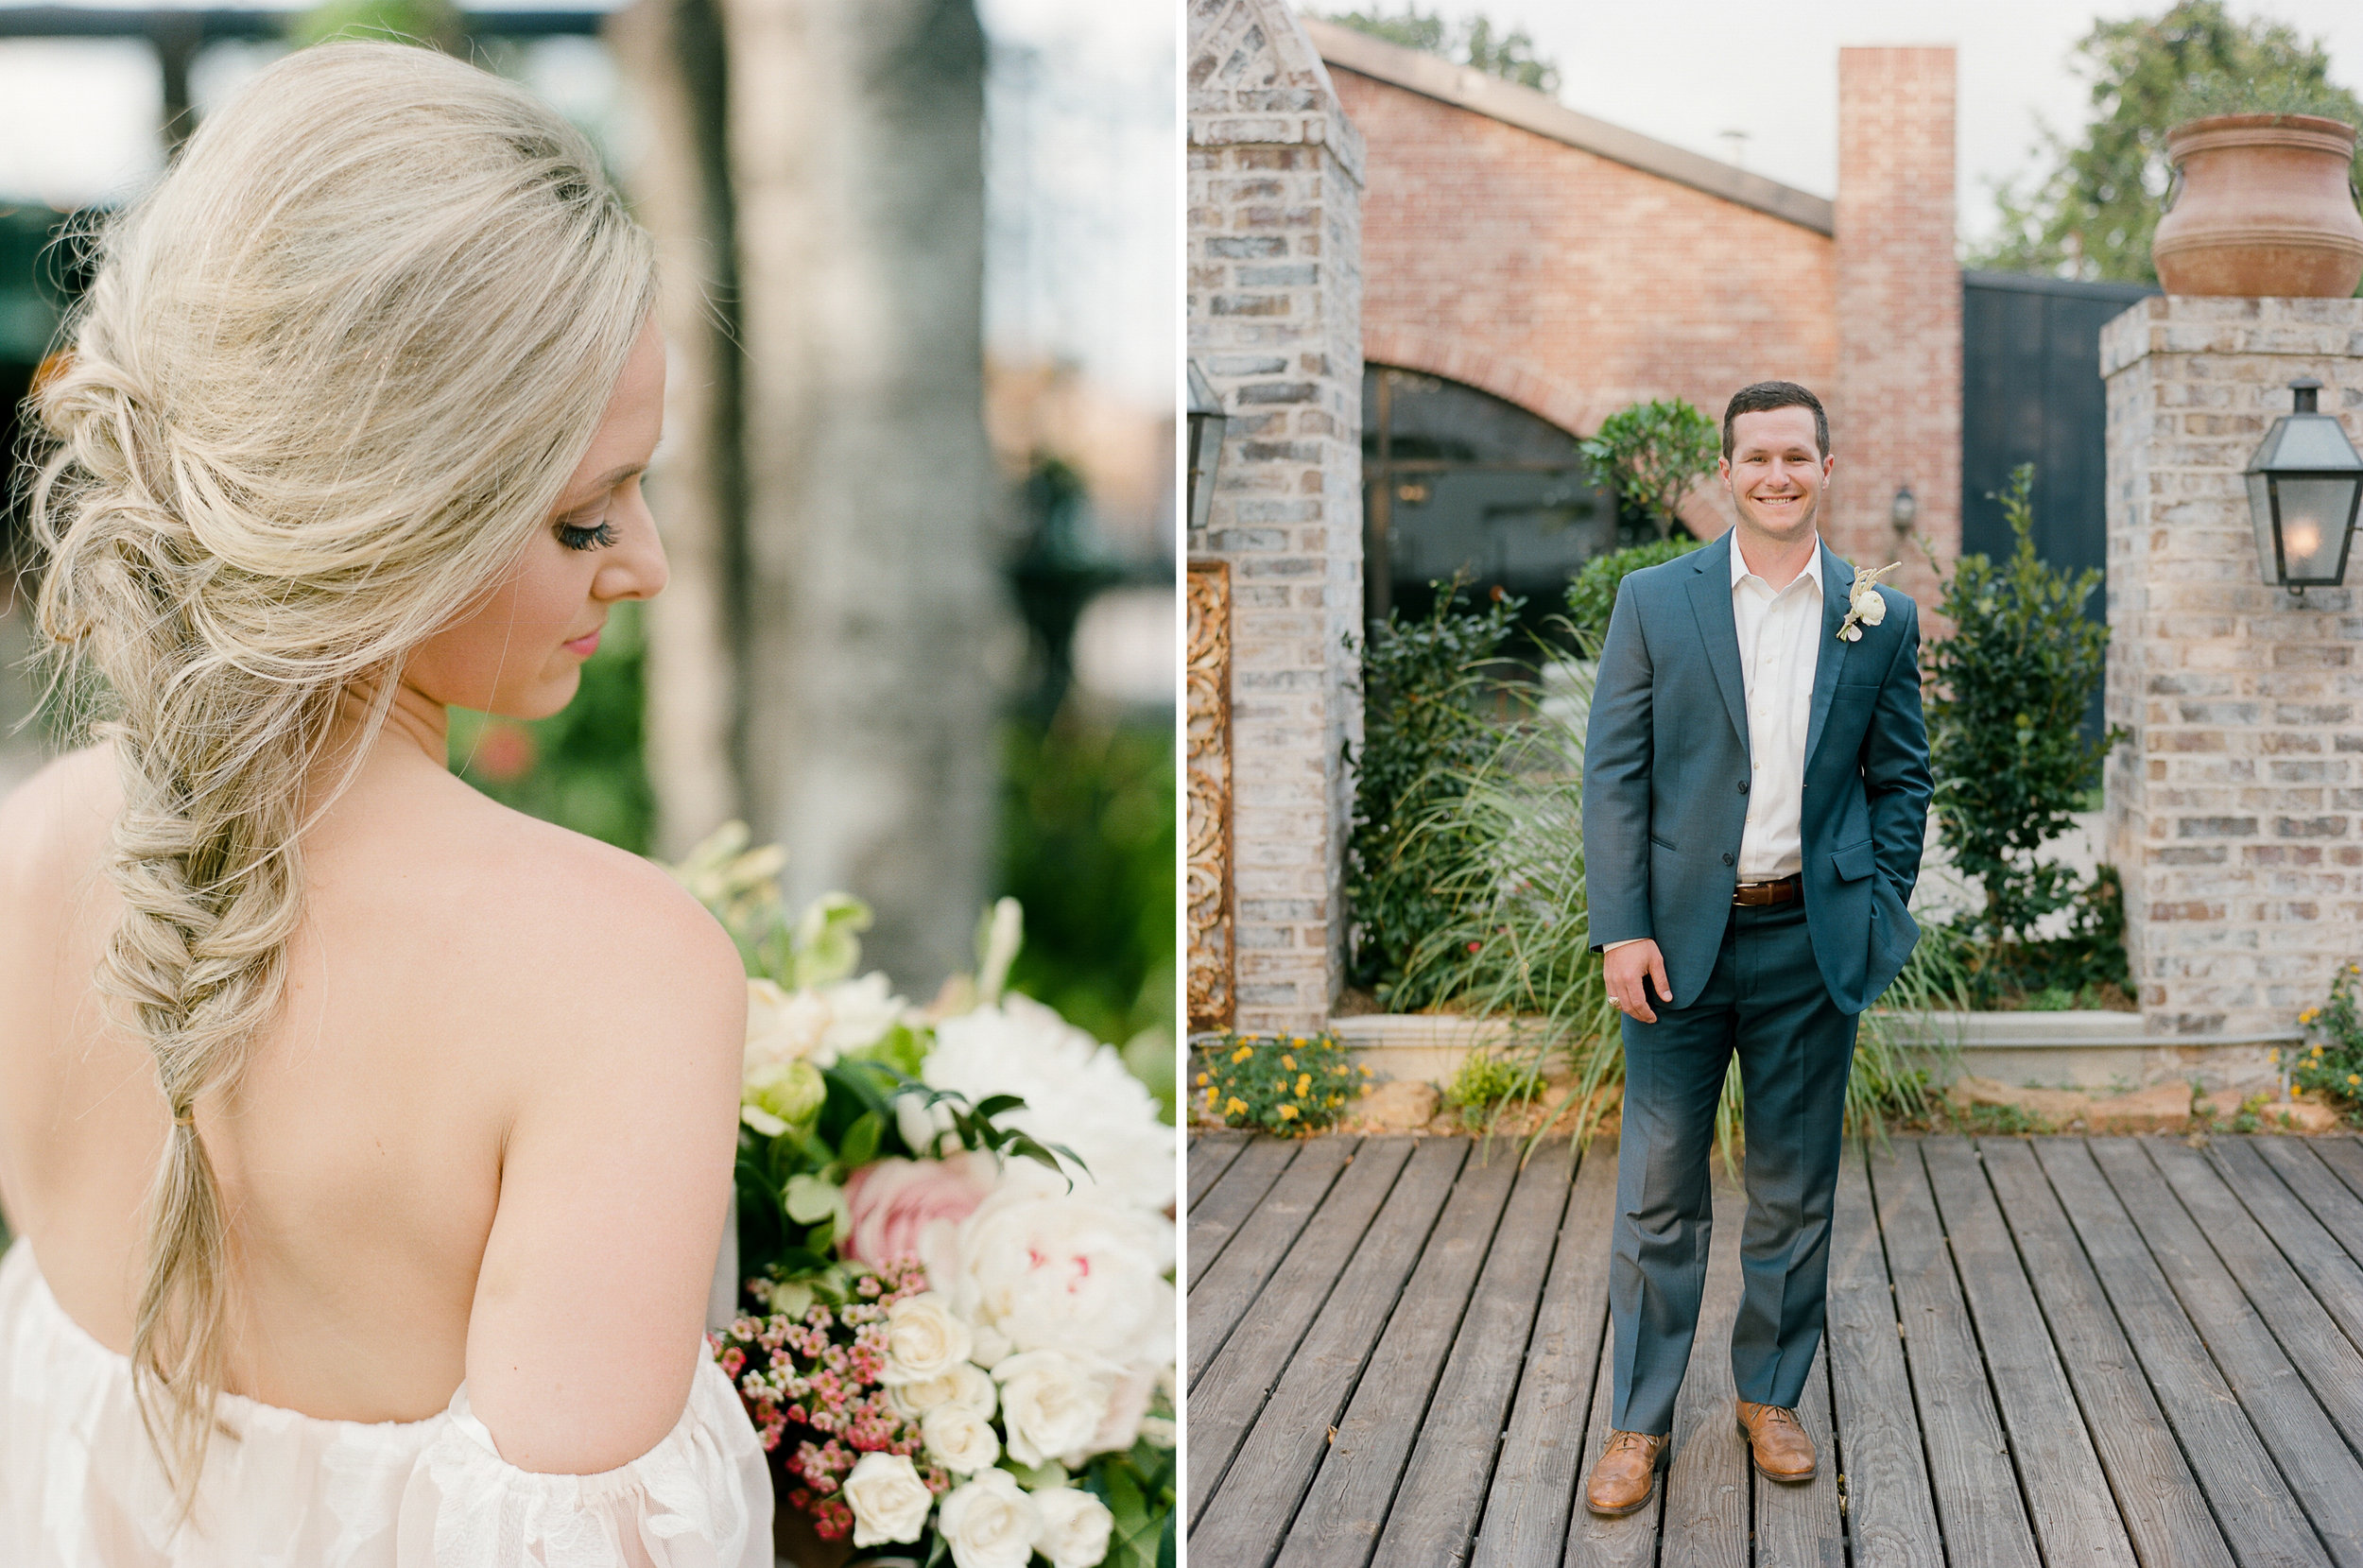 Houston-Wedding-Photographer-Fine-Art-Film-Destination-Style-Me-Pretty-Austin-Dallas-New-Orleans-Dana-Fernandez-Photography-103.jpg